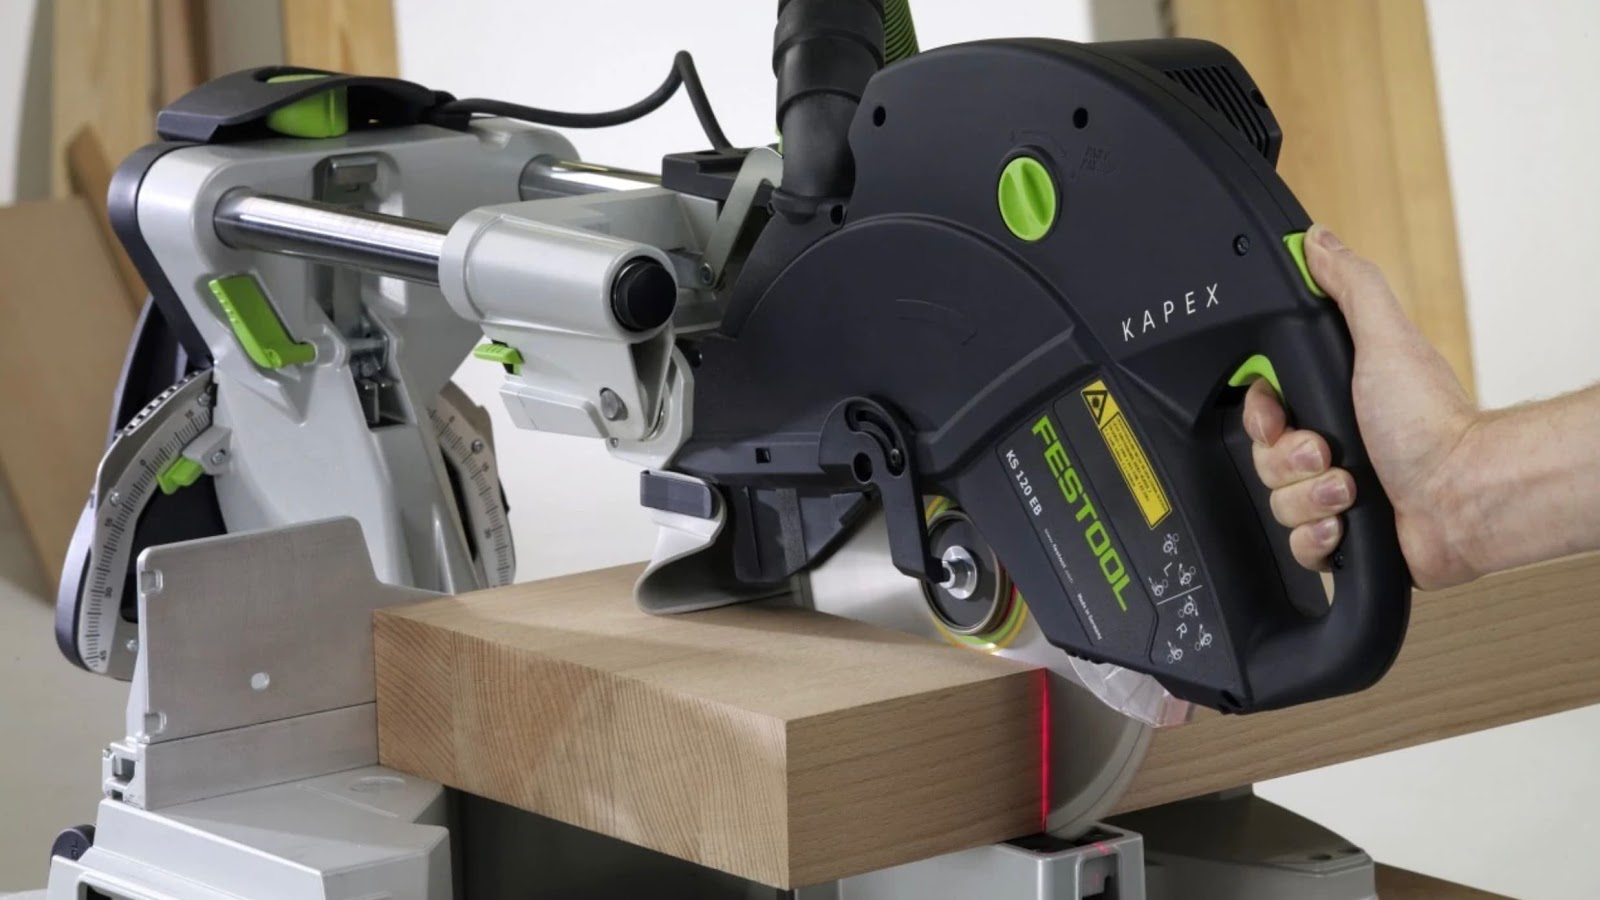 Festool kapex - cutting wood